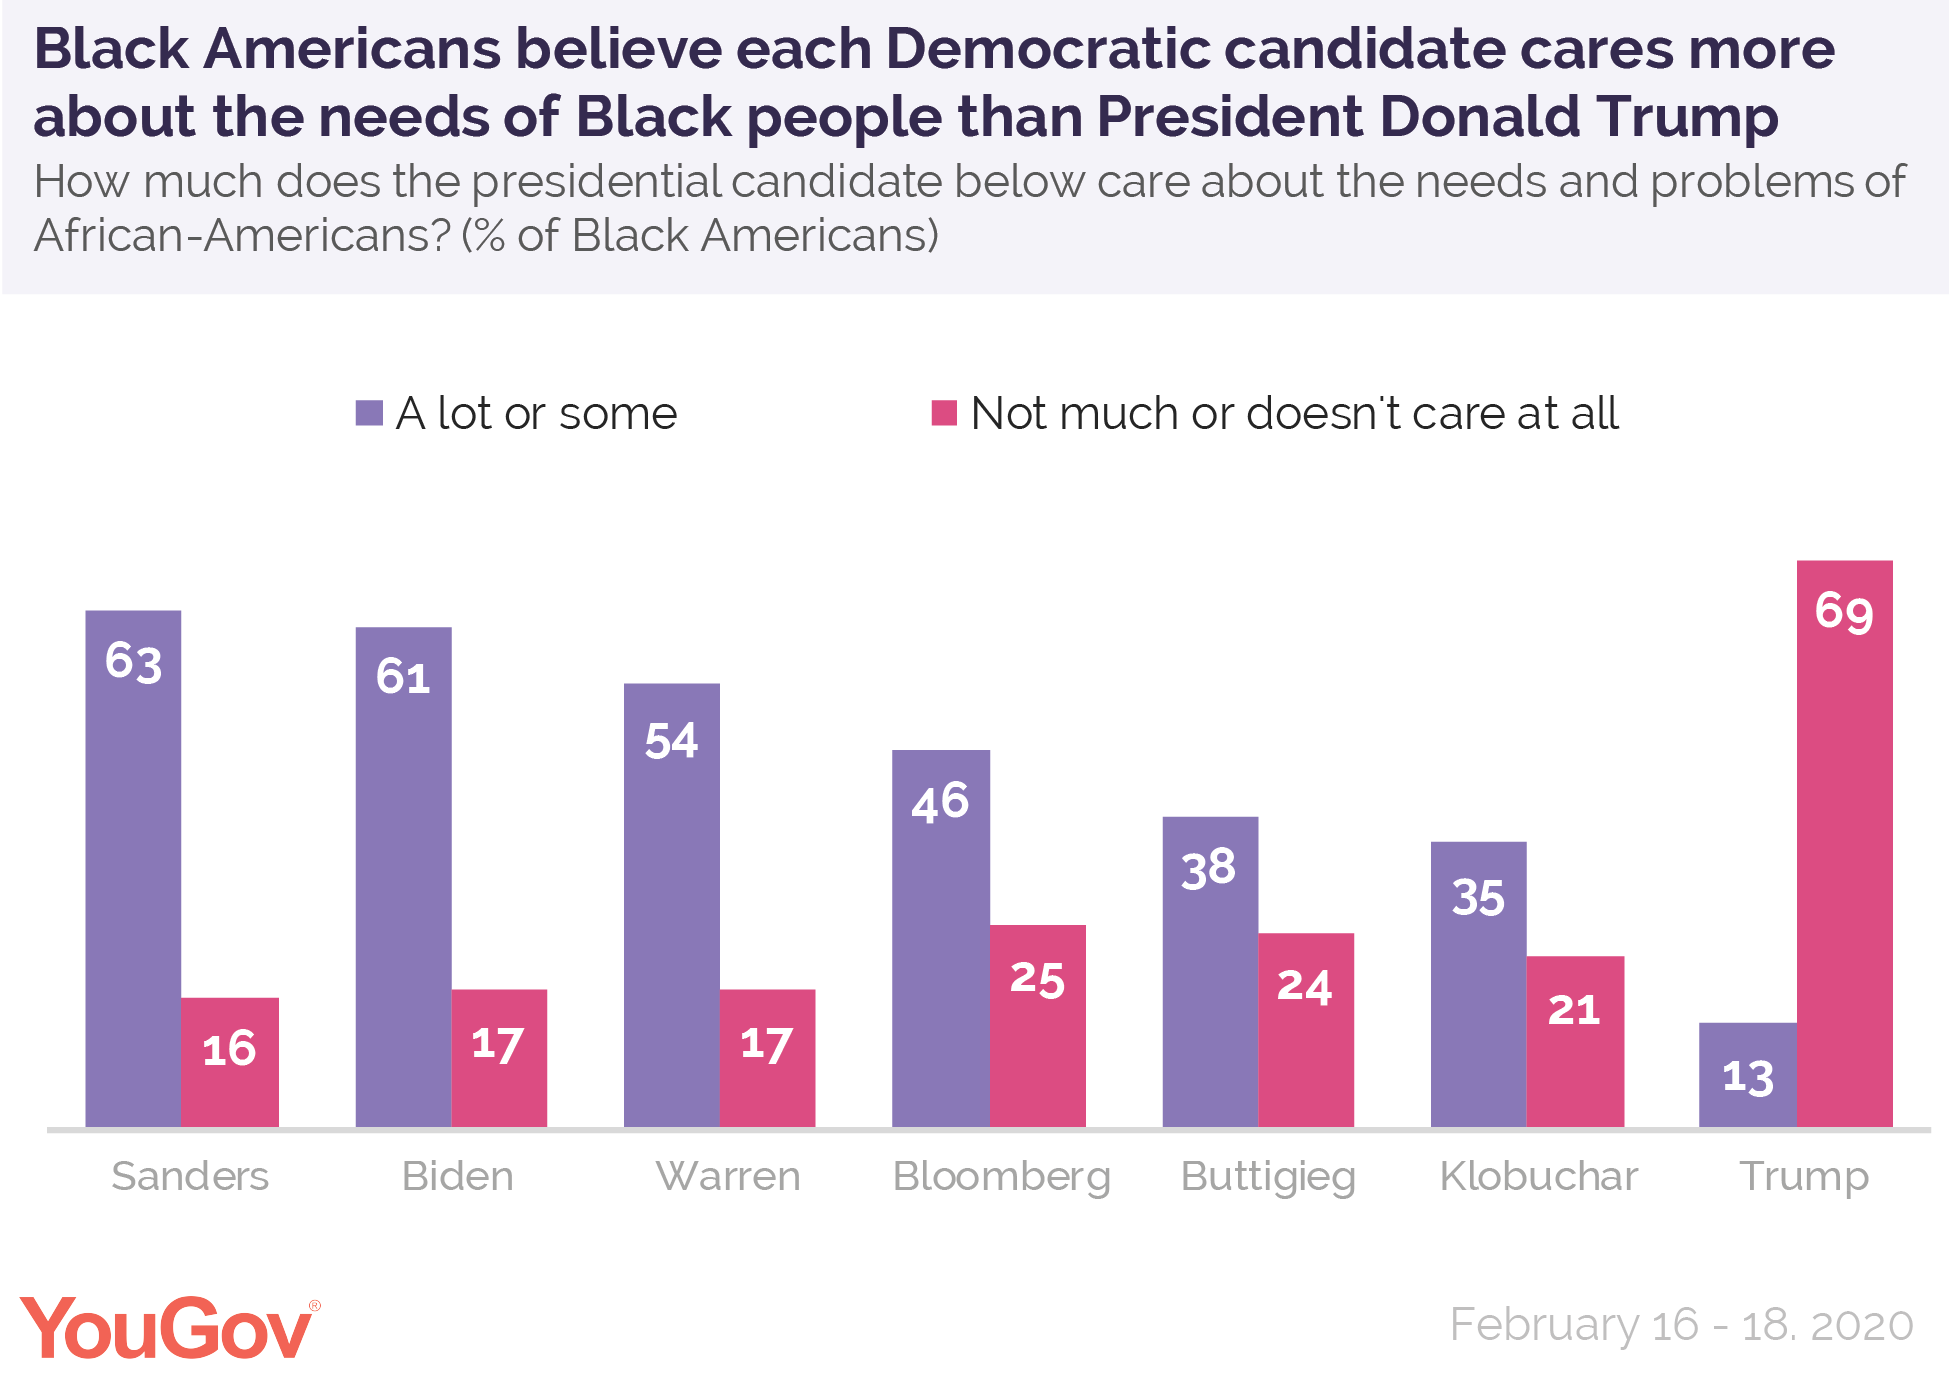 Black Americans believe each Democratic candidate cares more about the needs of Black people than President Donald Trump